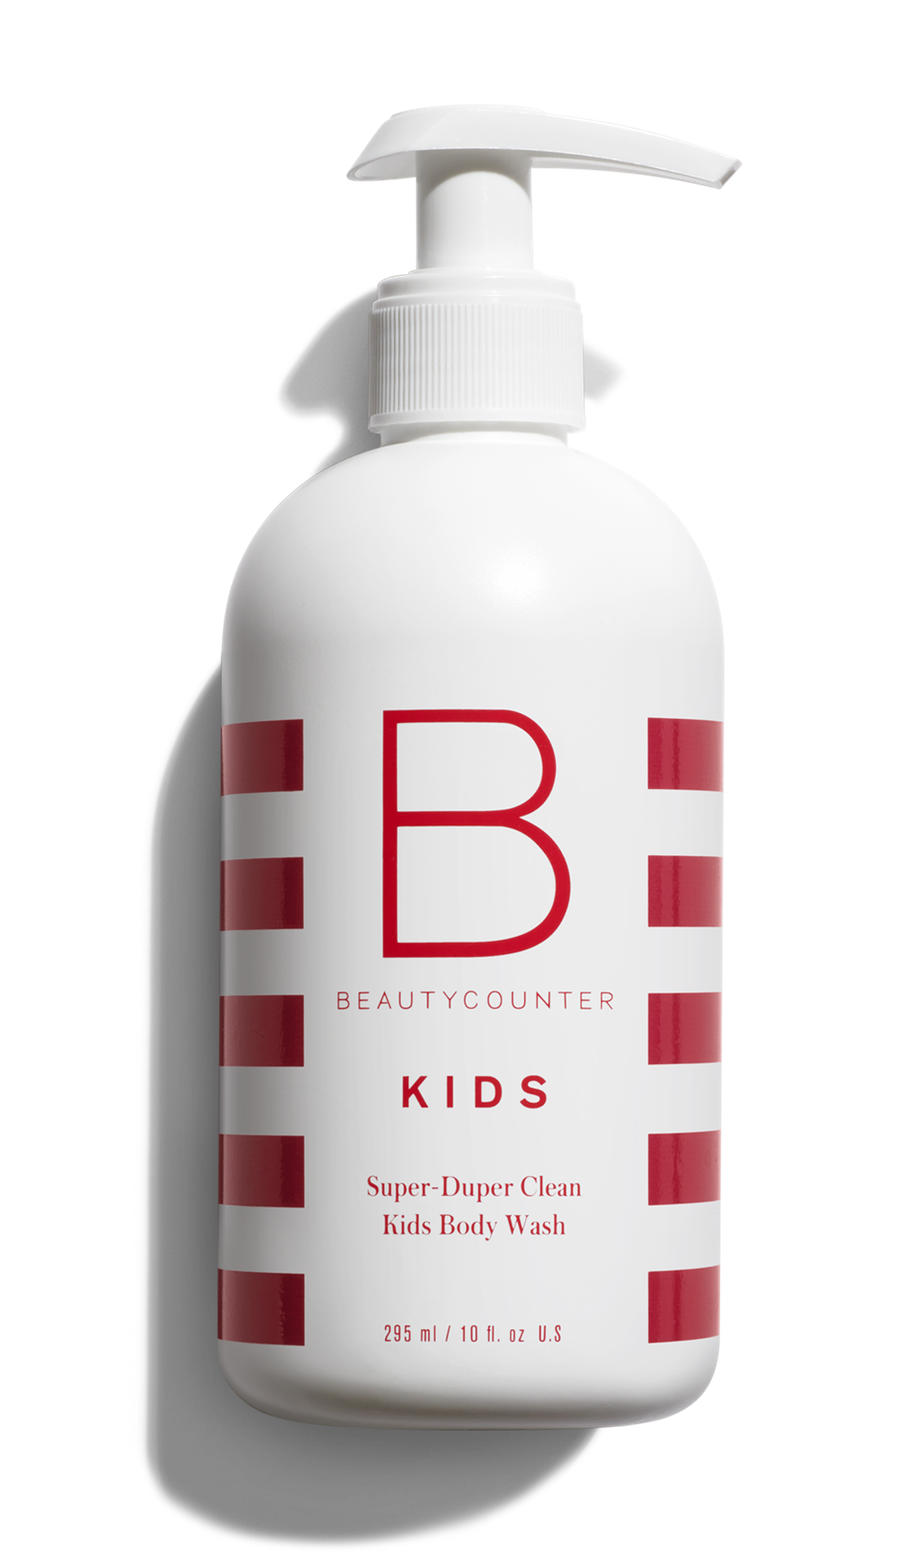 product-images-4013-imgs-pdp-new-super-duper-clean-kids-body-wash.png